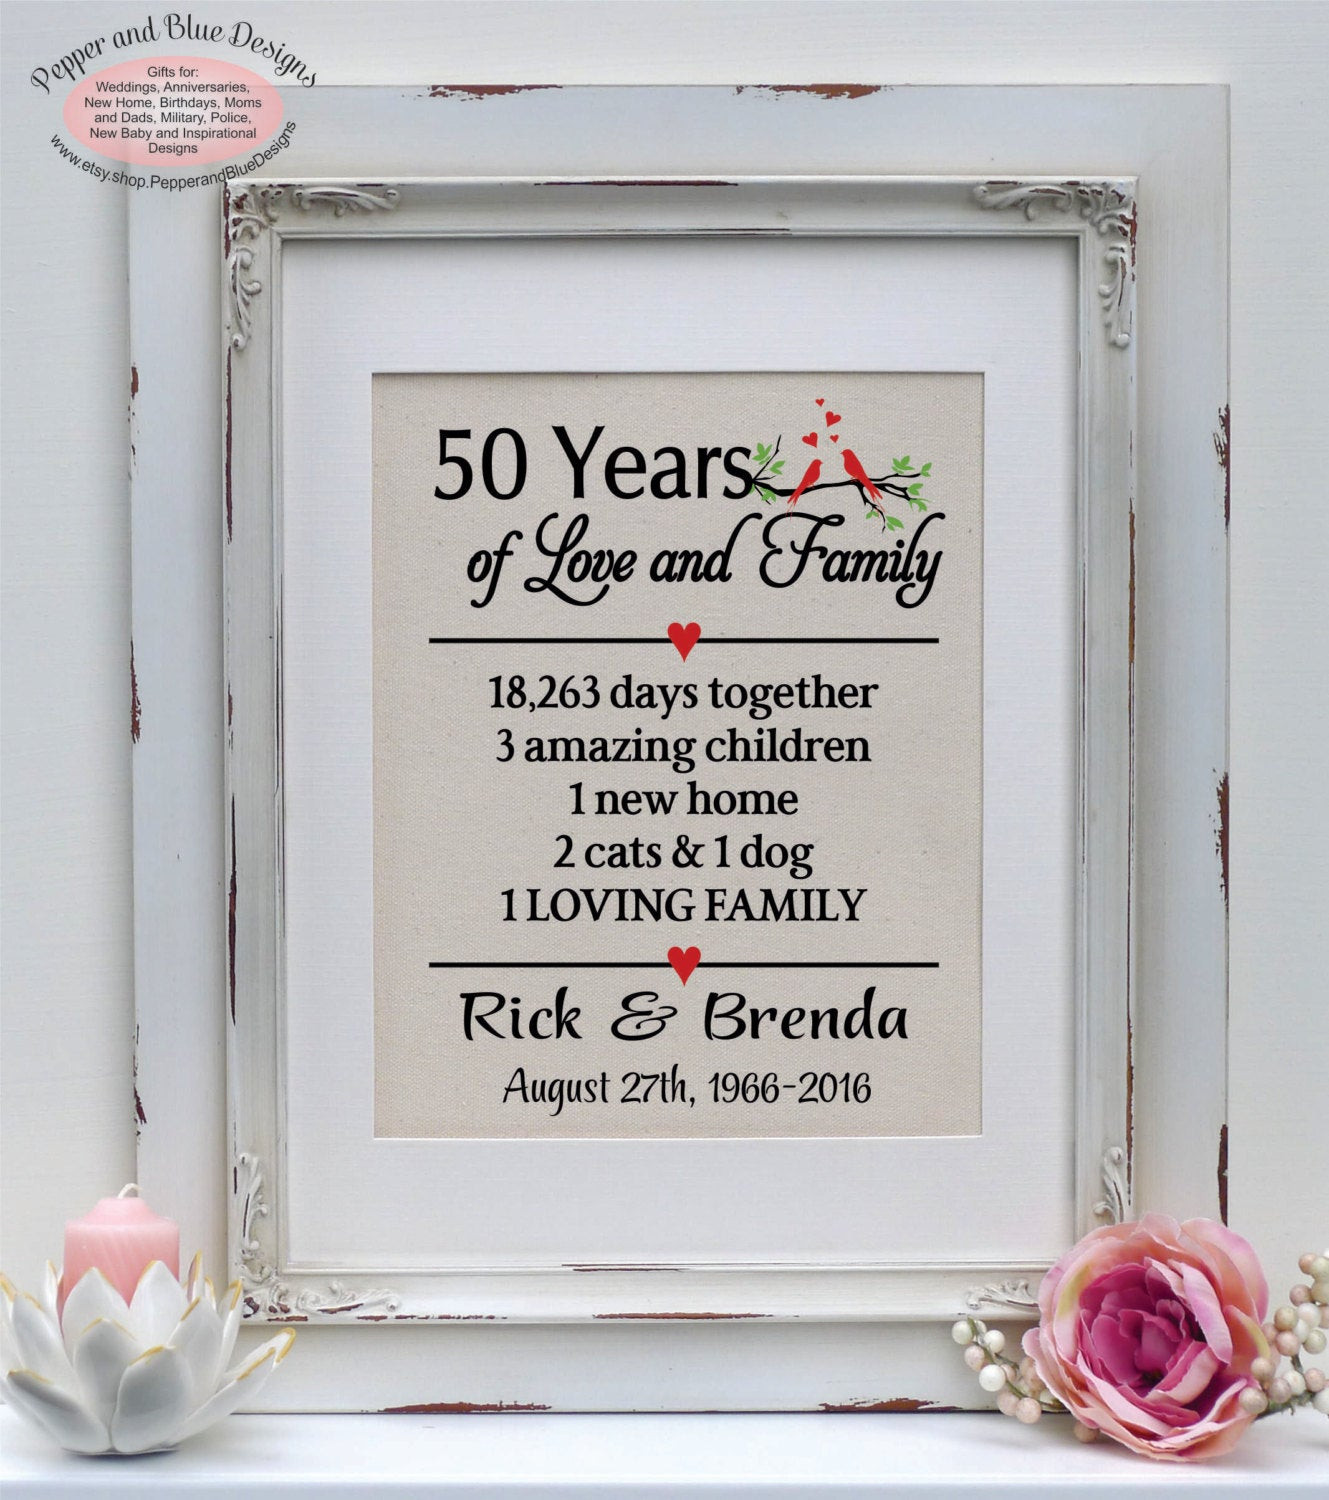 Best ideas about 50 Year Birthday Gifts . Save or Pin 50th anniversary t 50 years 50 year anniversary Now.